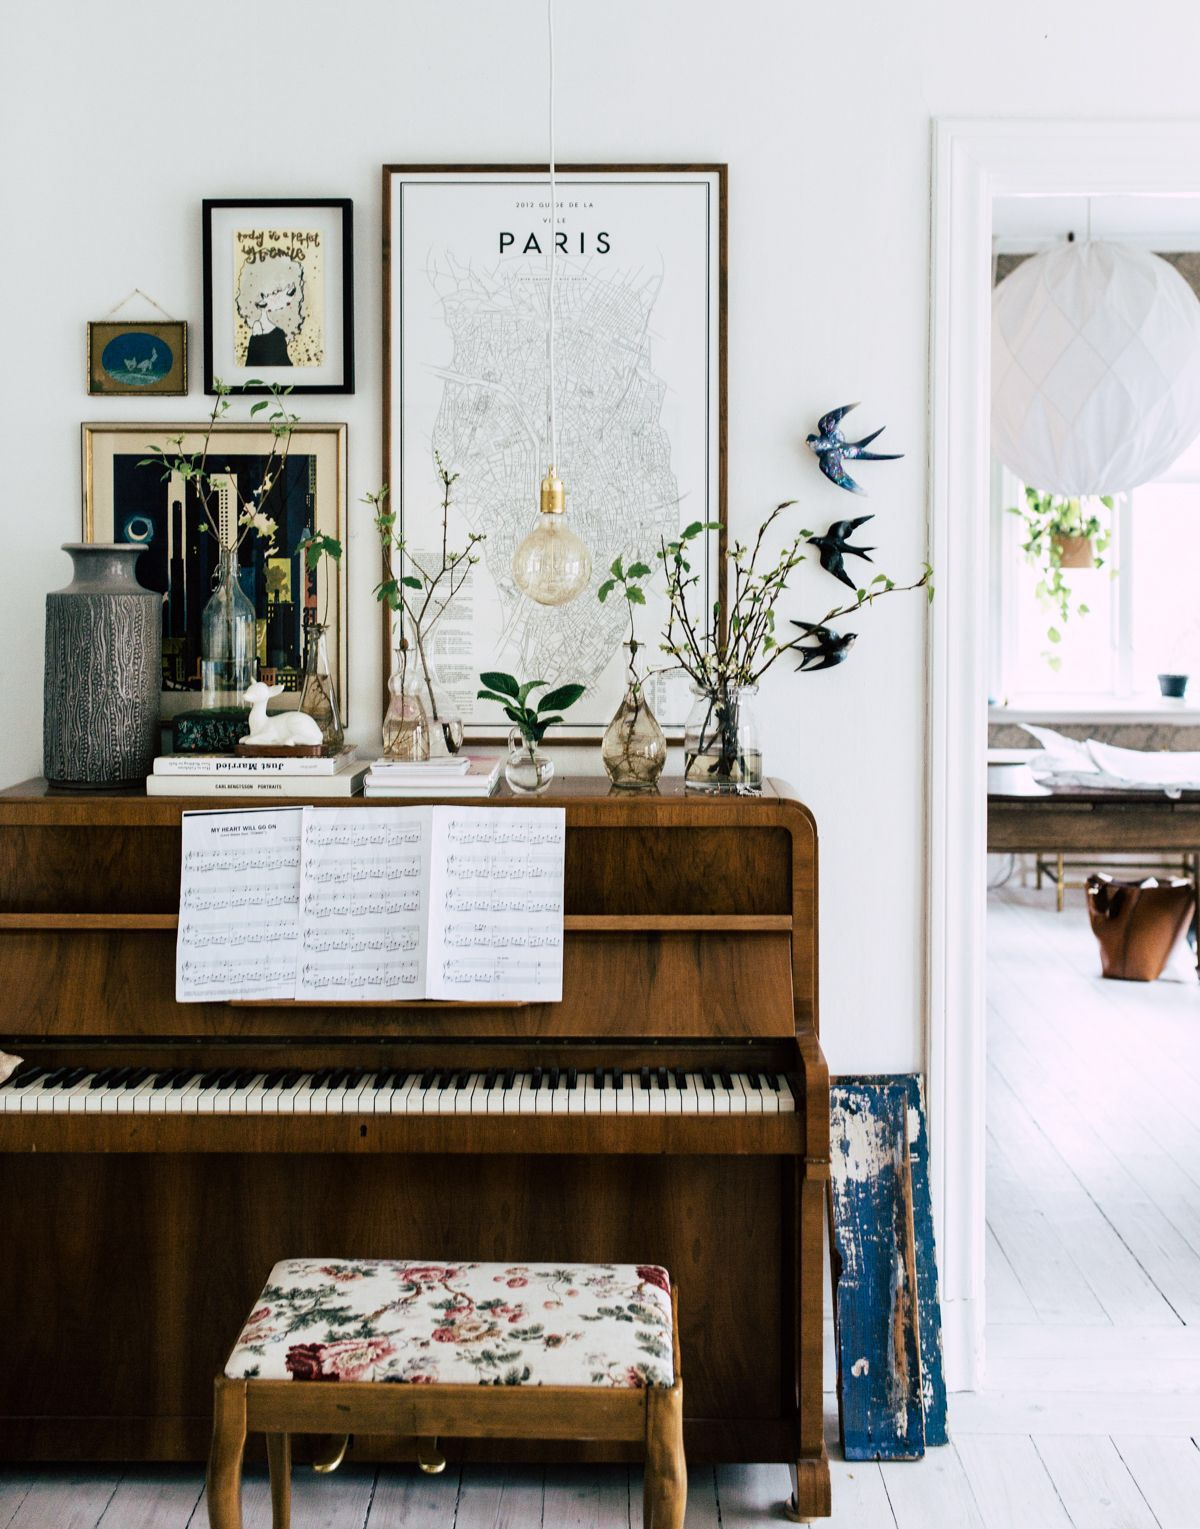 Pin by Caitlin Magarity on small + simple | Pinterest | Living ...